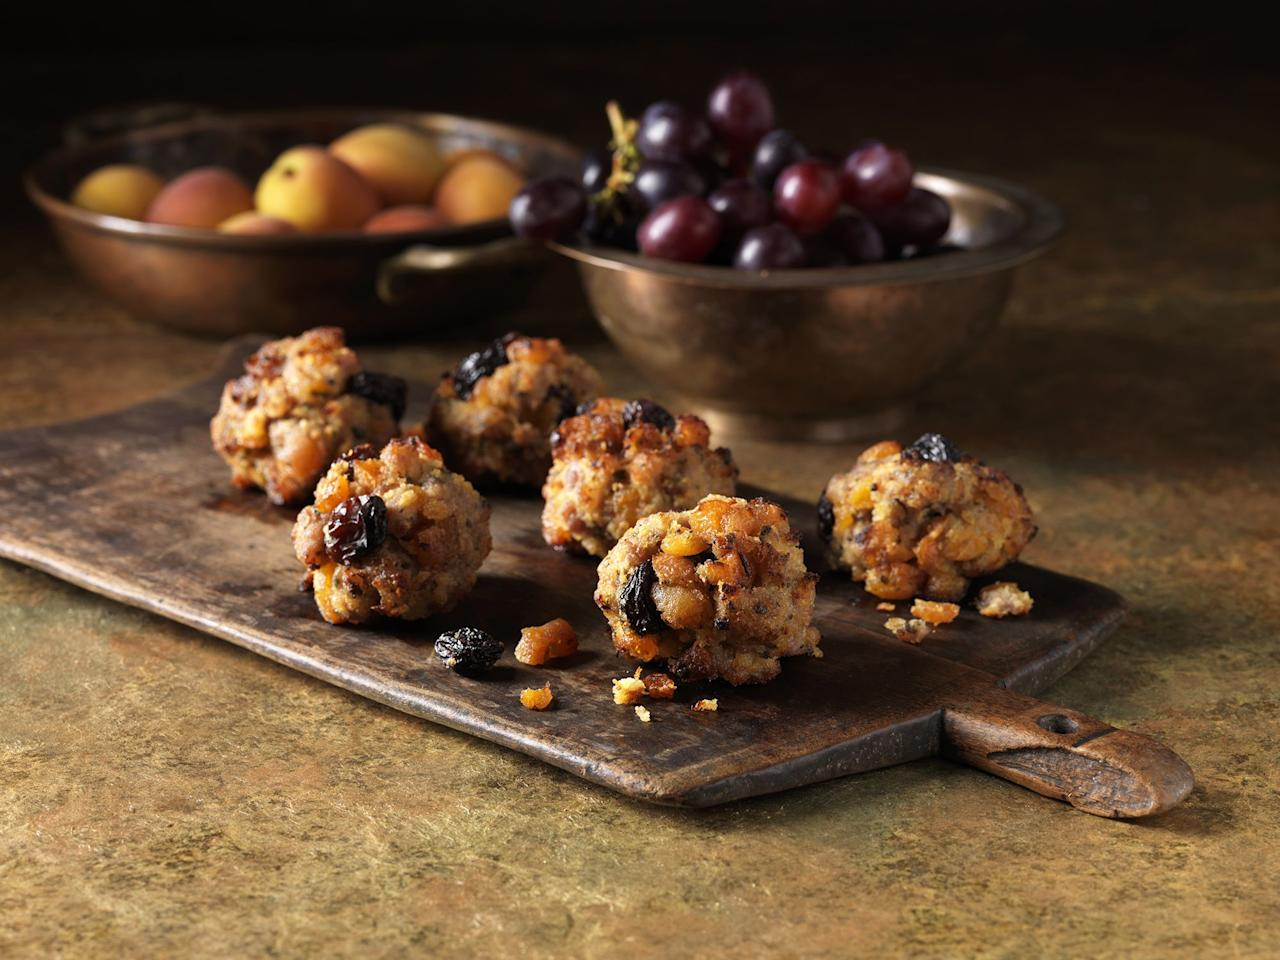 """<p>Here at the Good Housekeeping Institute, <a href=""""https://www.goodhousekeeping.com/uk/christmas/christmas-recipes/a562919/our-best-christmas-stuffing-recipes/"""" target=""""_blank"""">Christmas stuffing</a> is one of our favourite foods on Christmas day. </p><p>It's a crucial component to a perfectly complete <a href=""""https://www.goodhousekeeping.com/uk/christmas/"""" target=""""_blank"""">Christmas</a> dinner plate, but can shop-bought really beat <a href=""""https://www.goodhousekeeping.com/uk/christmas/christmas-recipes/a558098/maple-pecan-stuffing-cake/"""" target=""""_blank"""">homemade stuffing</a>?</p><p>We always look for stuffing that is juicy and full of flavour, with succulent meat, traditionally seasoned with an assortment of sage, thyme, rosemary and parsley. </p><p>We aren't picky when it comes to flavours, as long as it's well-balanced. This year we had a great mix of unique flavours such as: fig and stilton, chicken and thyme, whisky and orange, and even one rolled in a pork crackling crumb. With the selection on offer, there is surely something to whet everyone's appetites.<strong><br></strong></p><h2 class=""""body-h2""""><strong>How we test</strong></h2><p>Our panel of 10 taste testers tried 14 different samples from supermarkets and brands, assessing on appearance, aroma, taste and texture to help you find the very best stuffing to go with your roast turkey this Christmas...<br></p><p> </p>"""